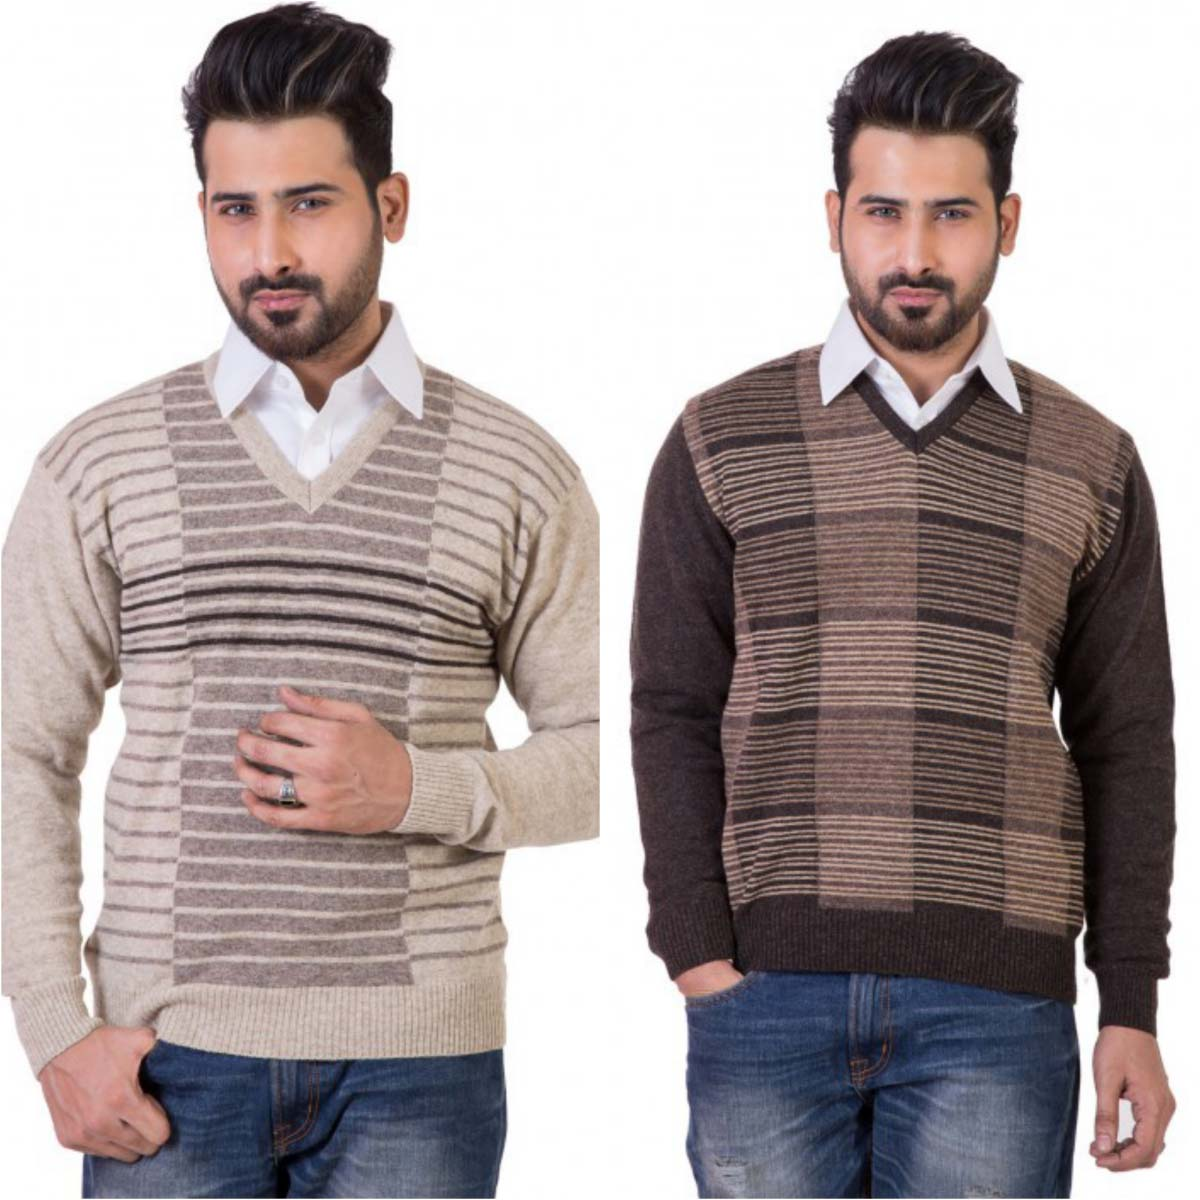 bonanza-winter-sweaters-and-outfits-2017-2018-for-men-7